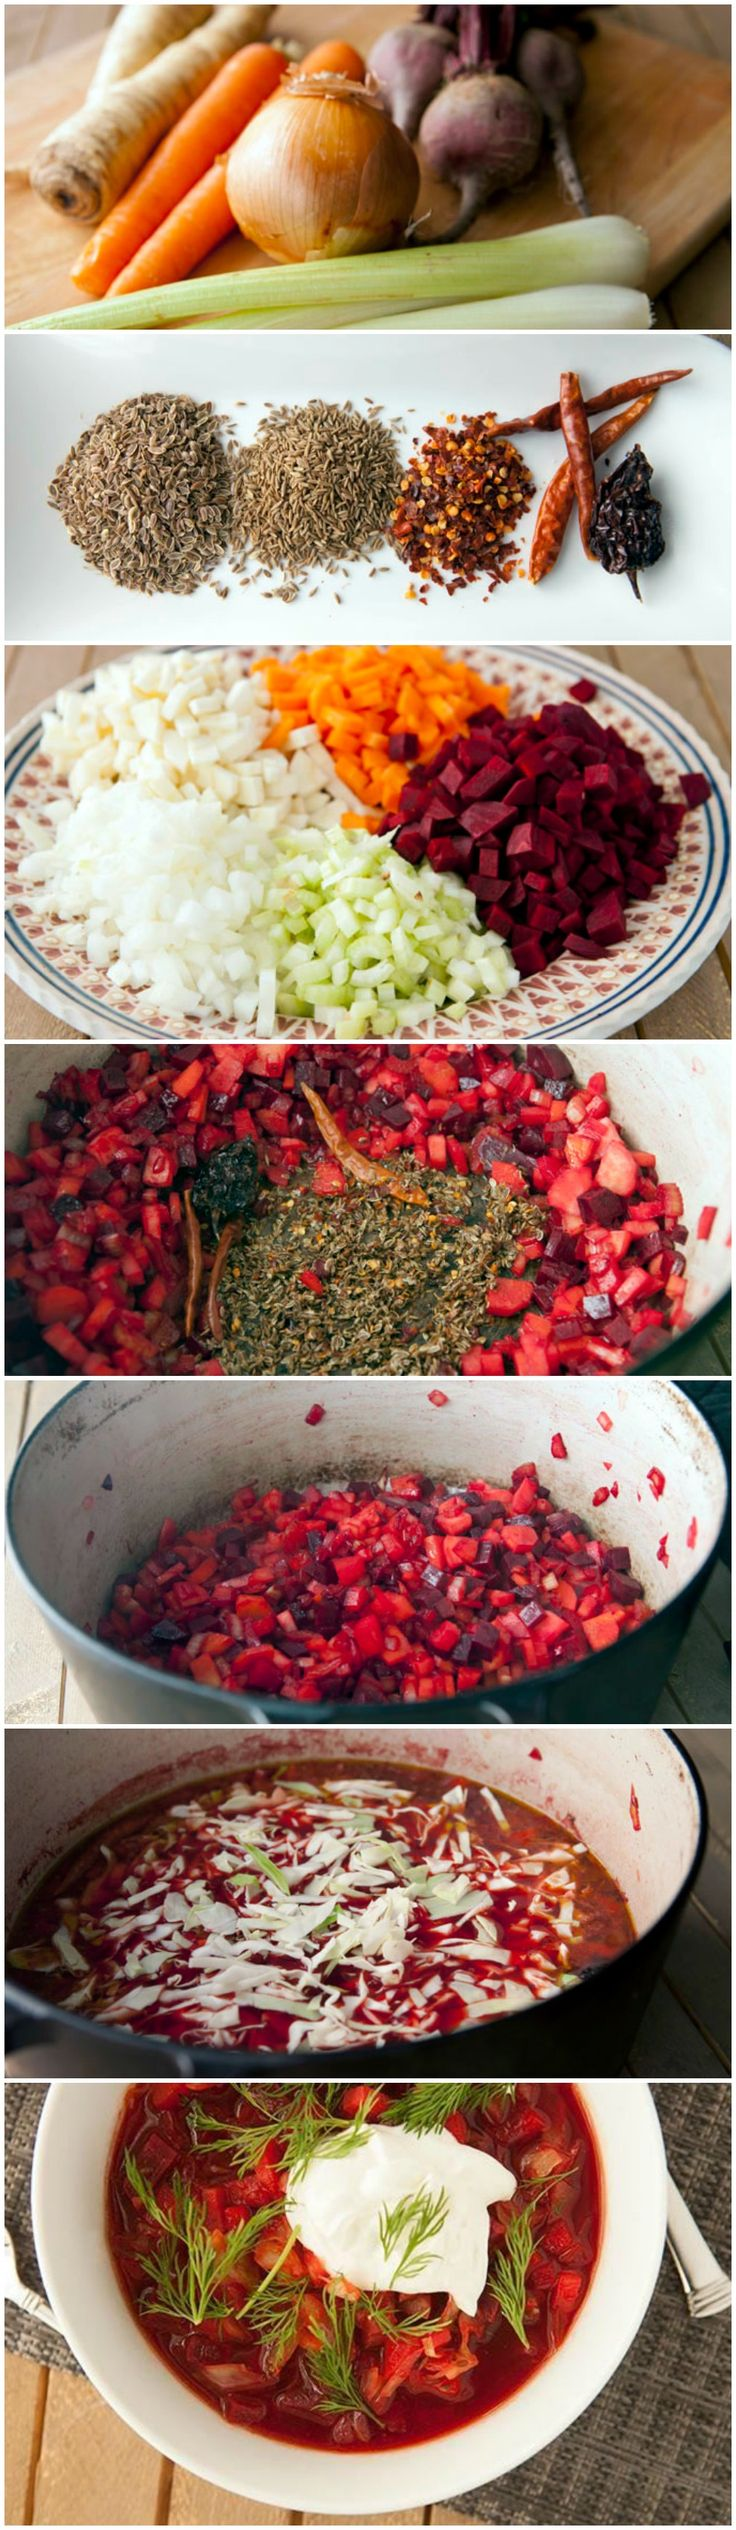 Chris hates bland food, so this recipe is perfect. My borscht has always been on the plain side